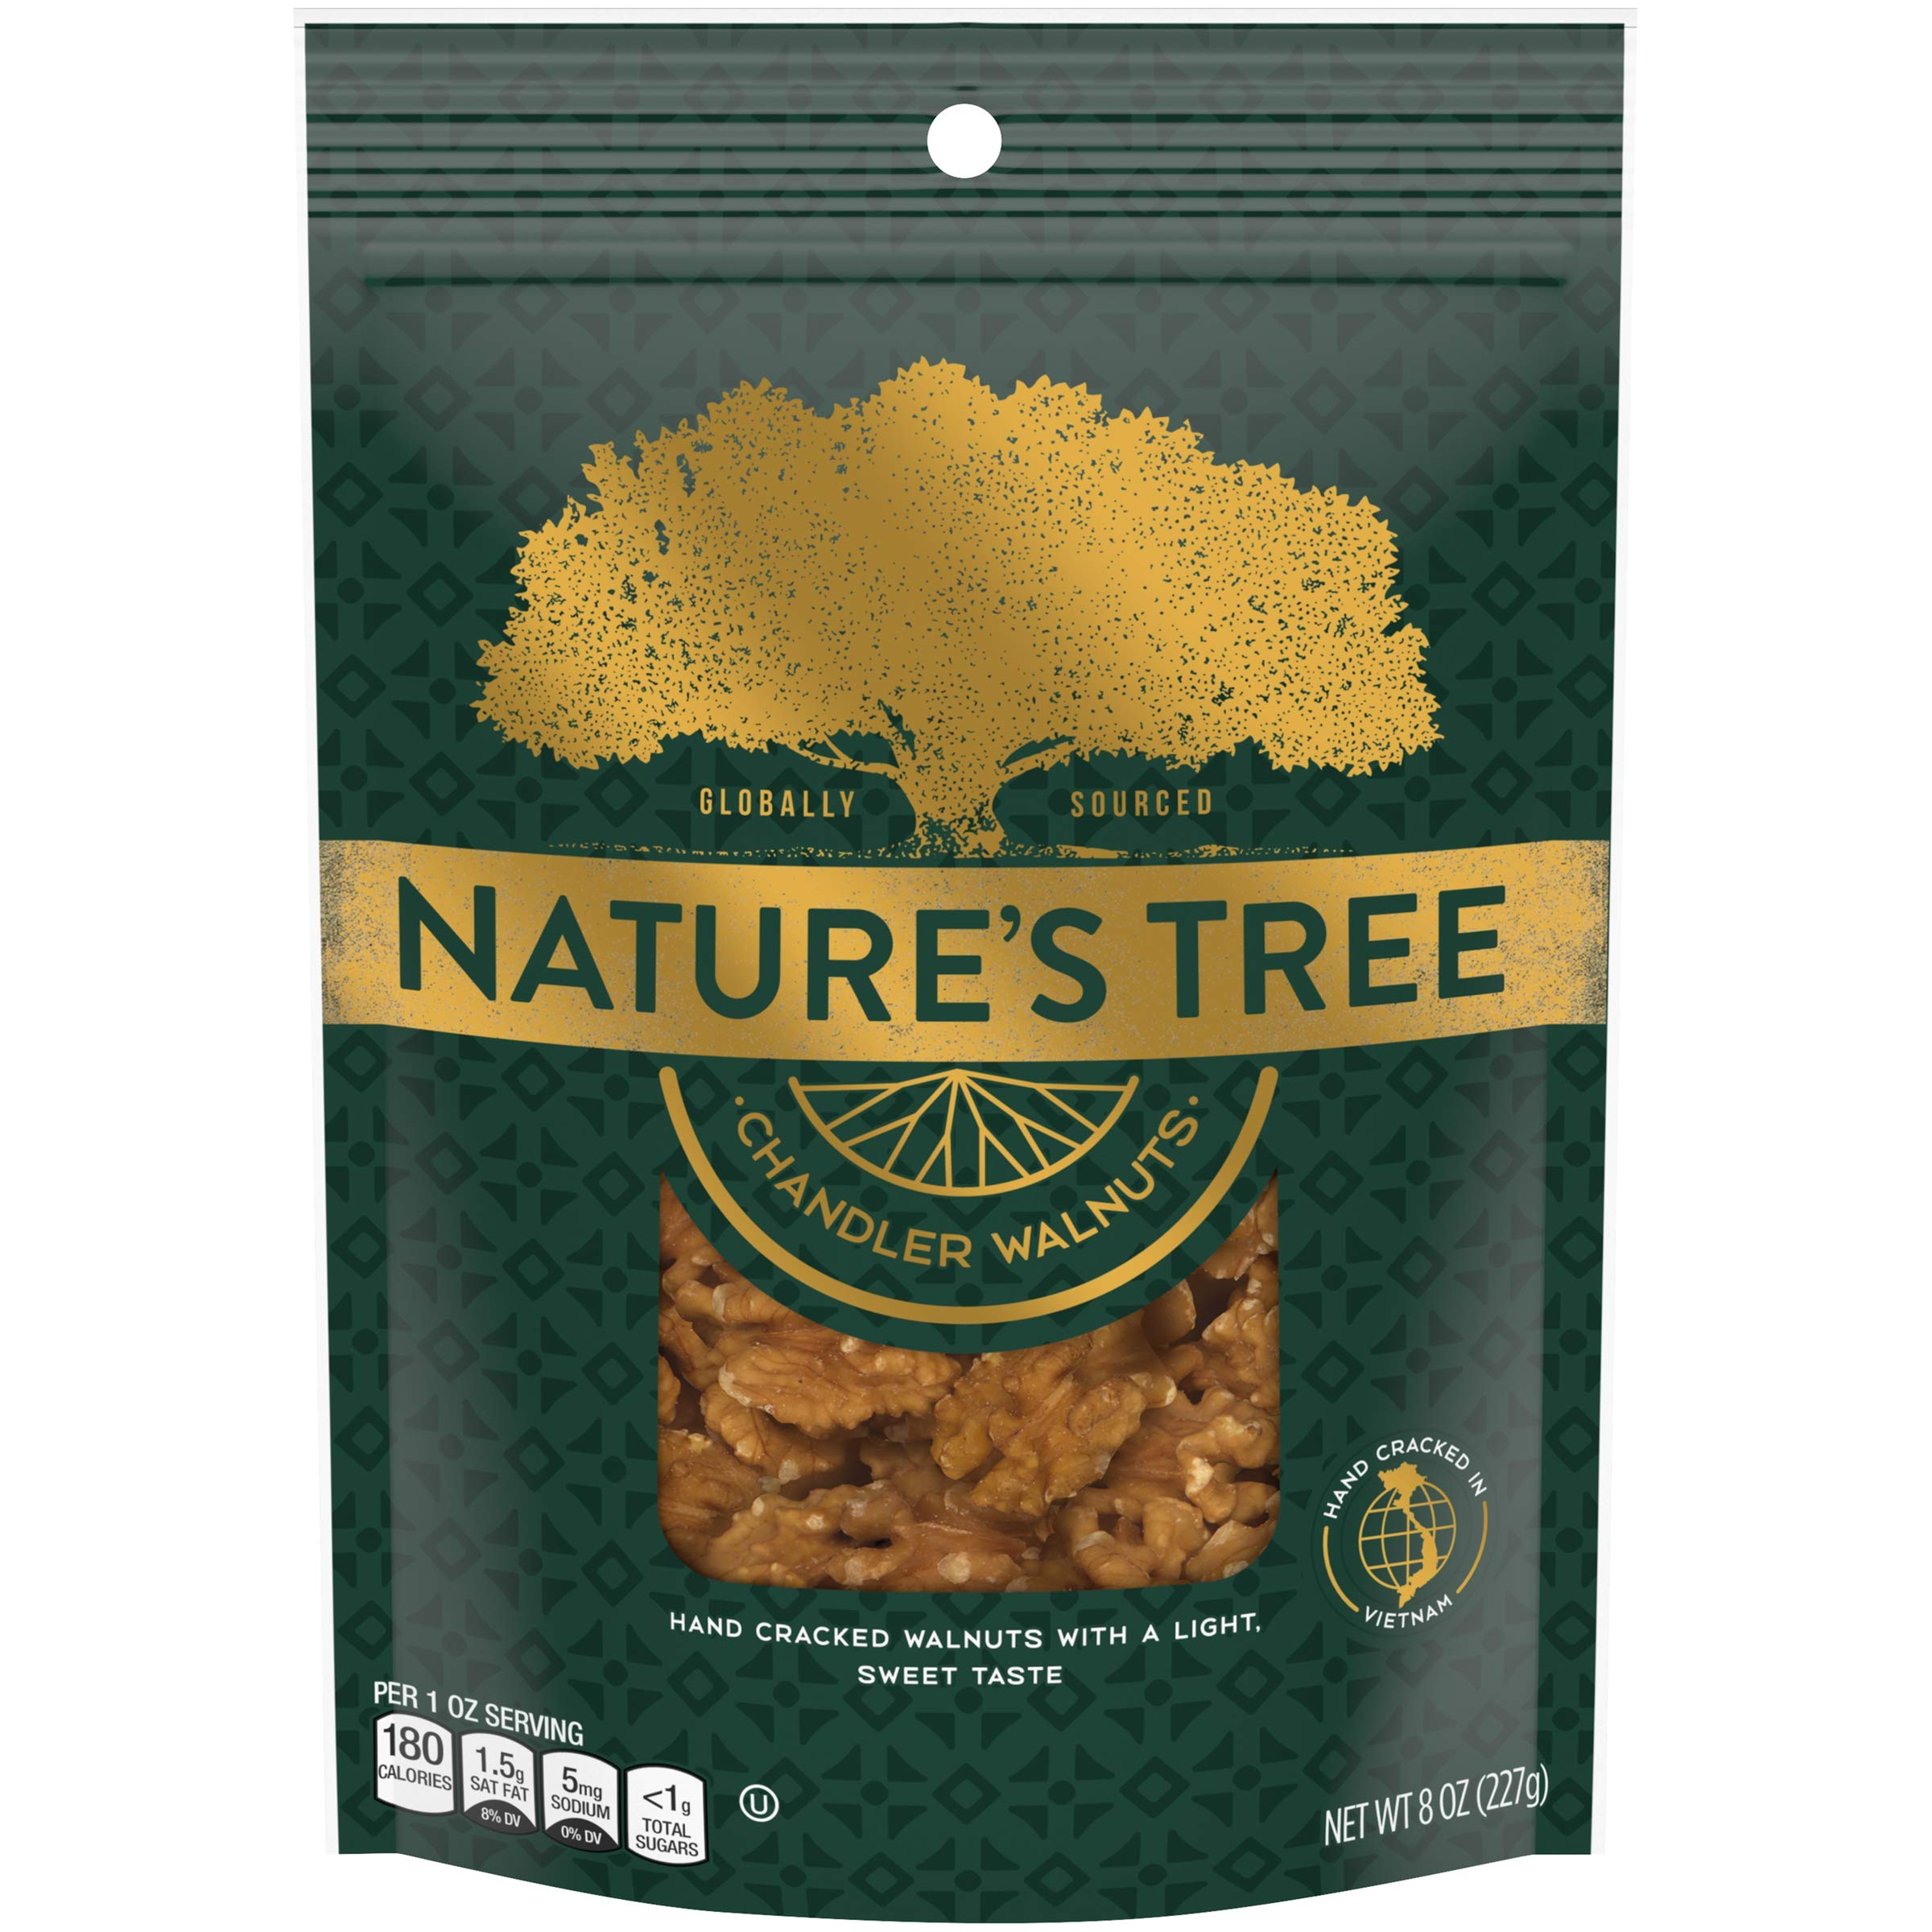 Nature's Tree Chandler Walnuts, 8 oz Bag (Pack of 9) by Nature's Tree